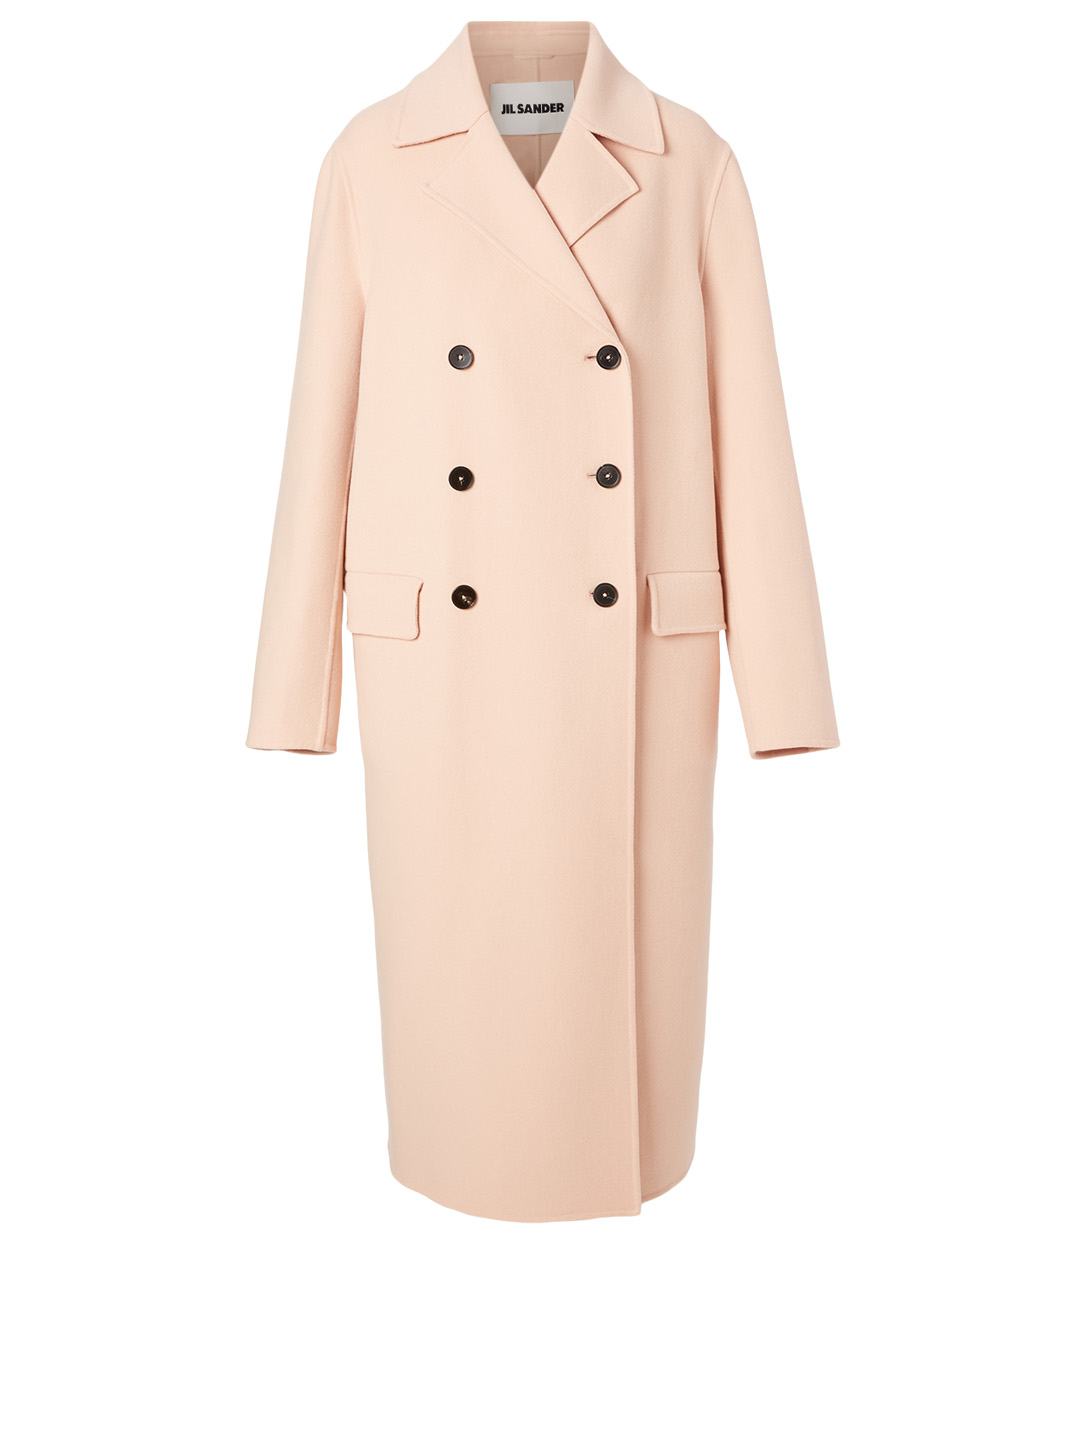 JIL SANDER Cashmere Long Coat Women's Pink